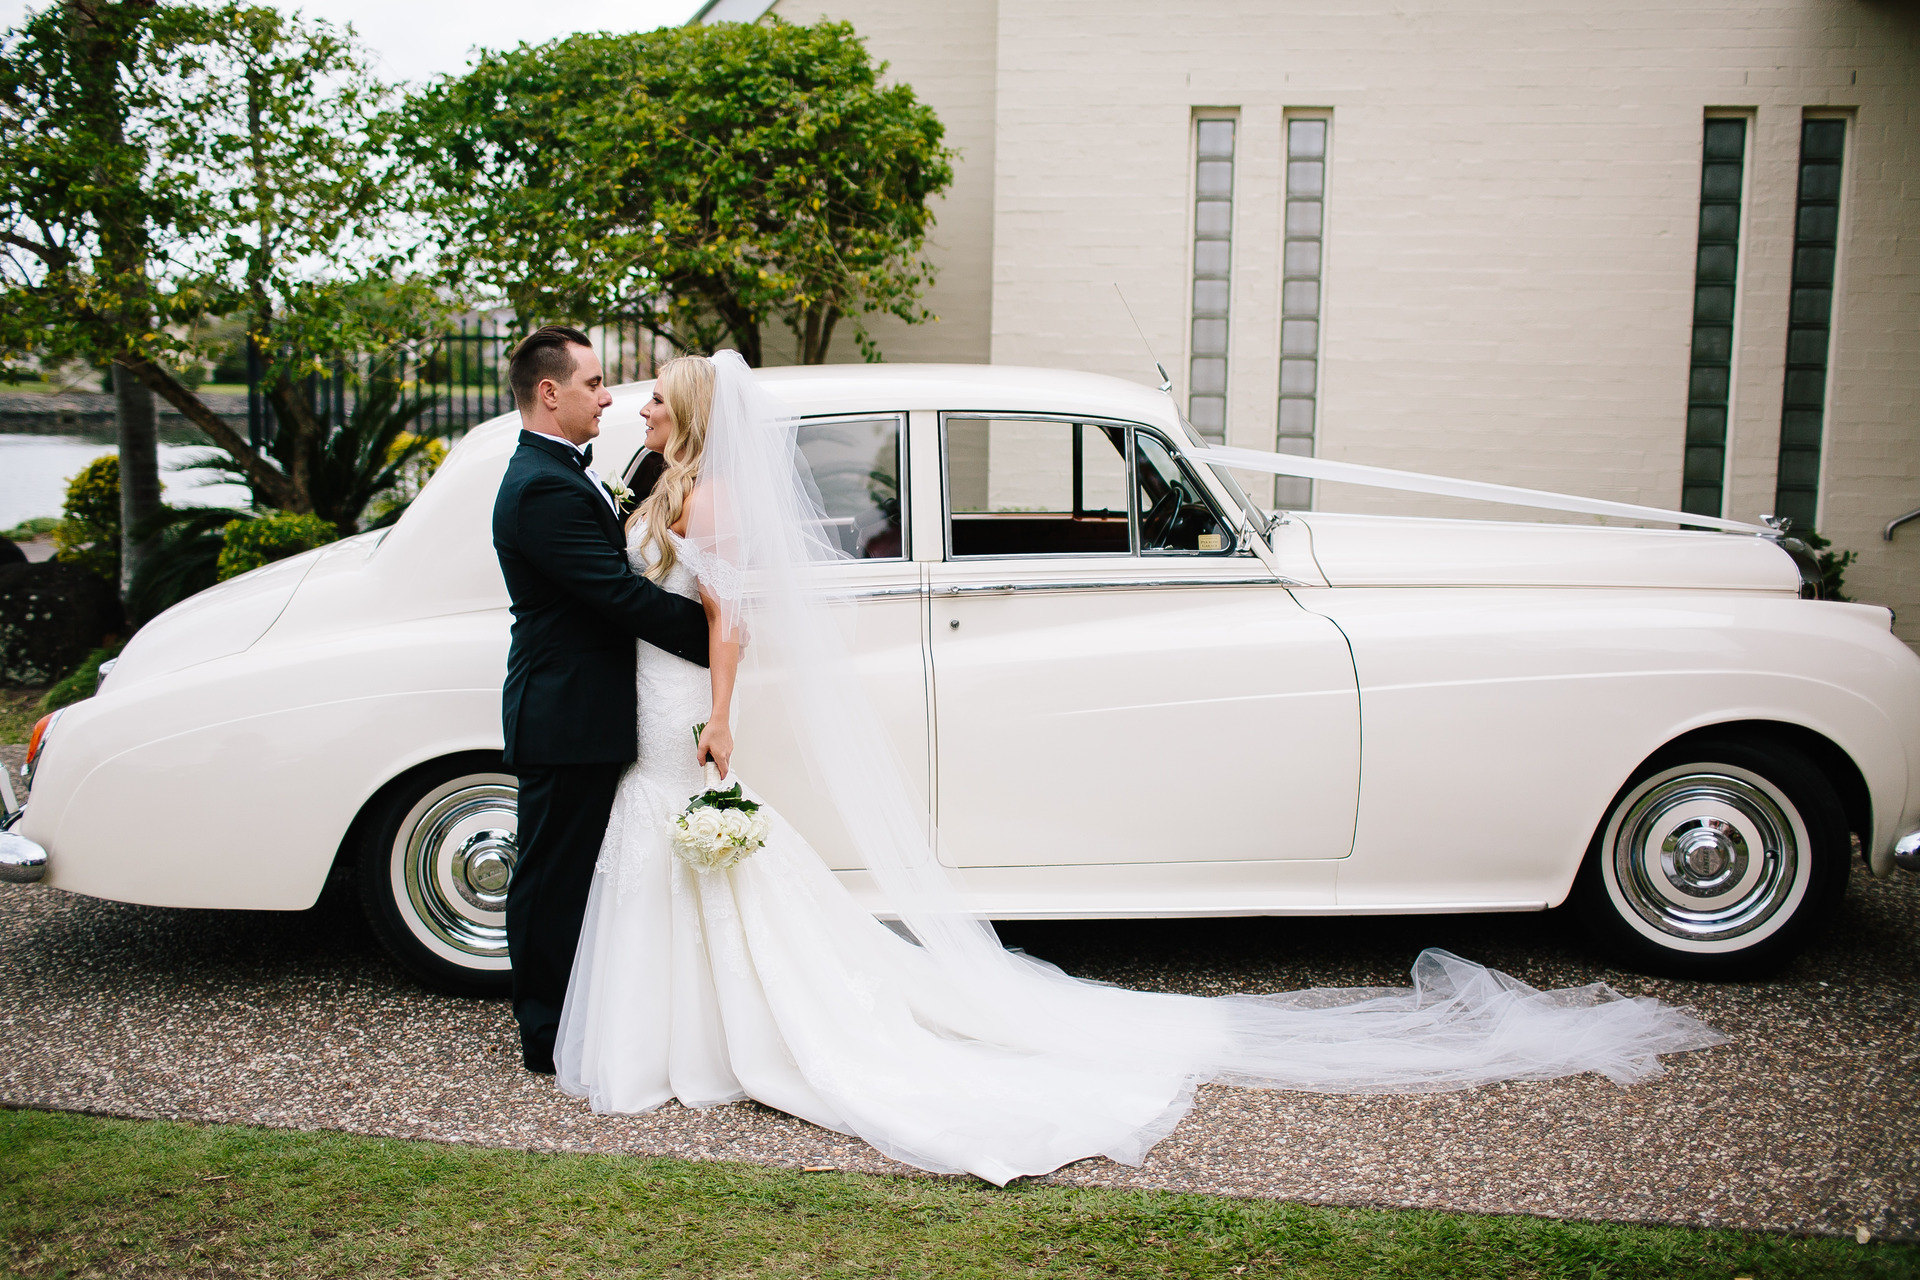 Gold coast wedding car with bride and groom